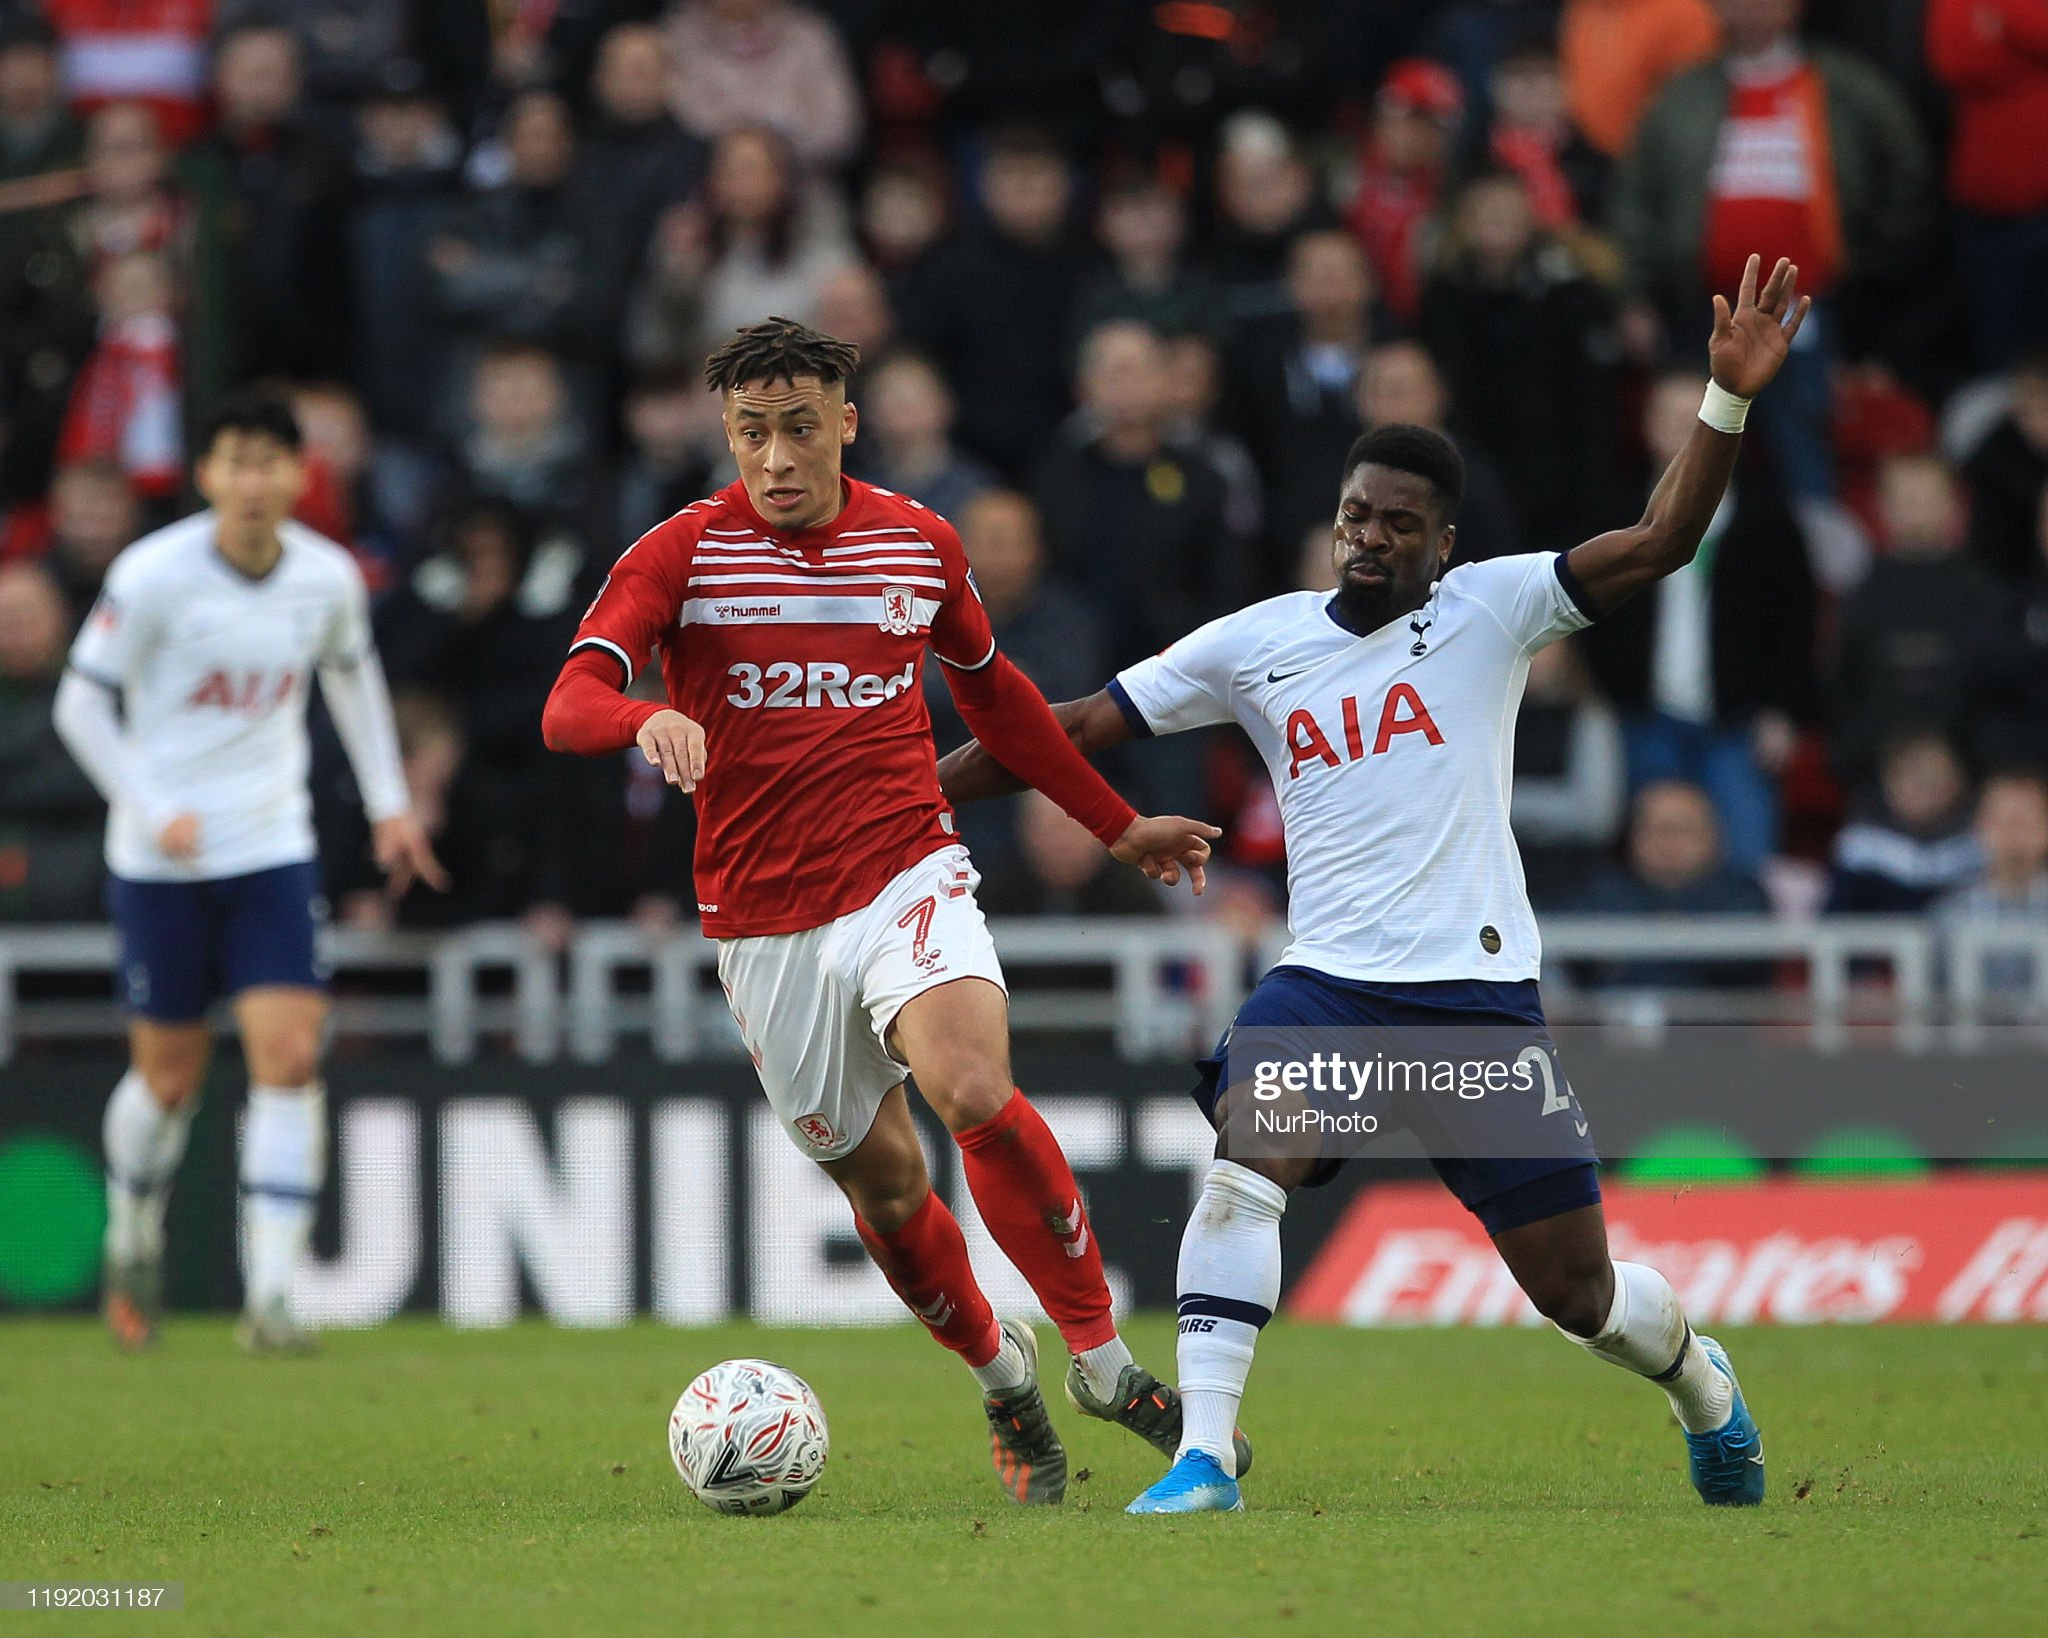 Tottenham v Middlesbrough preview, prediction and odds